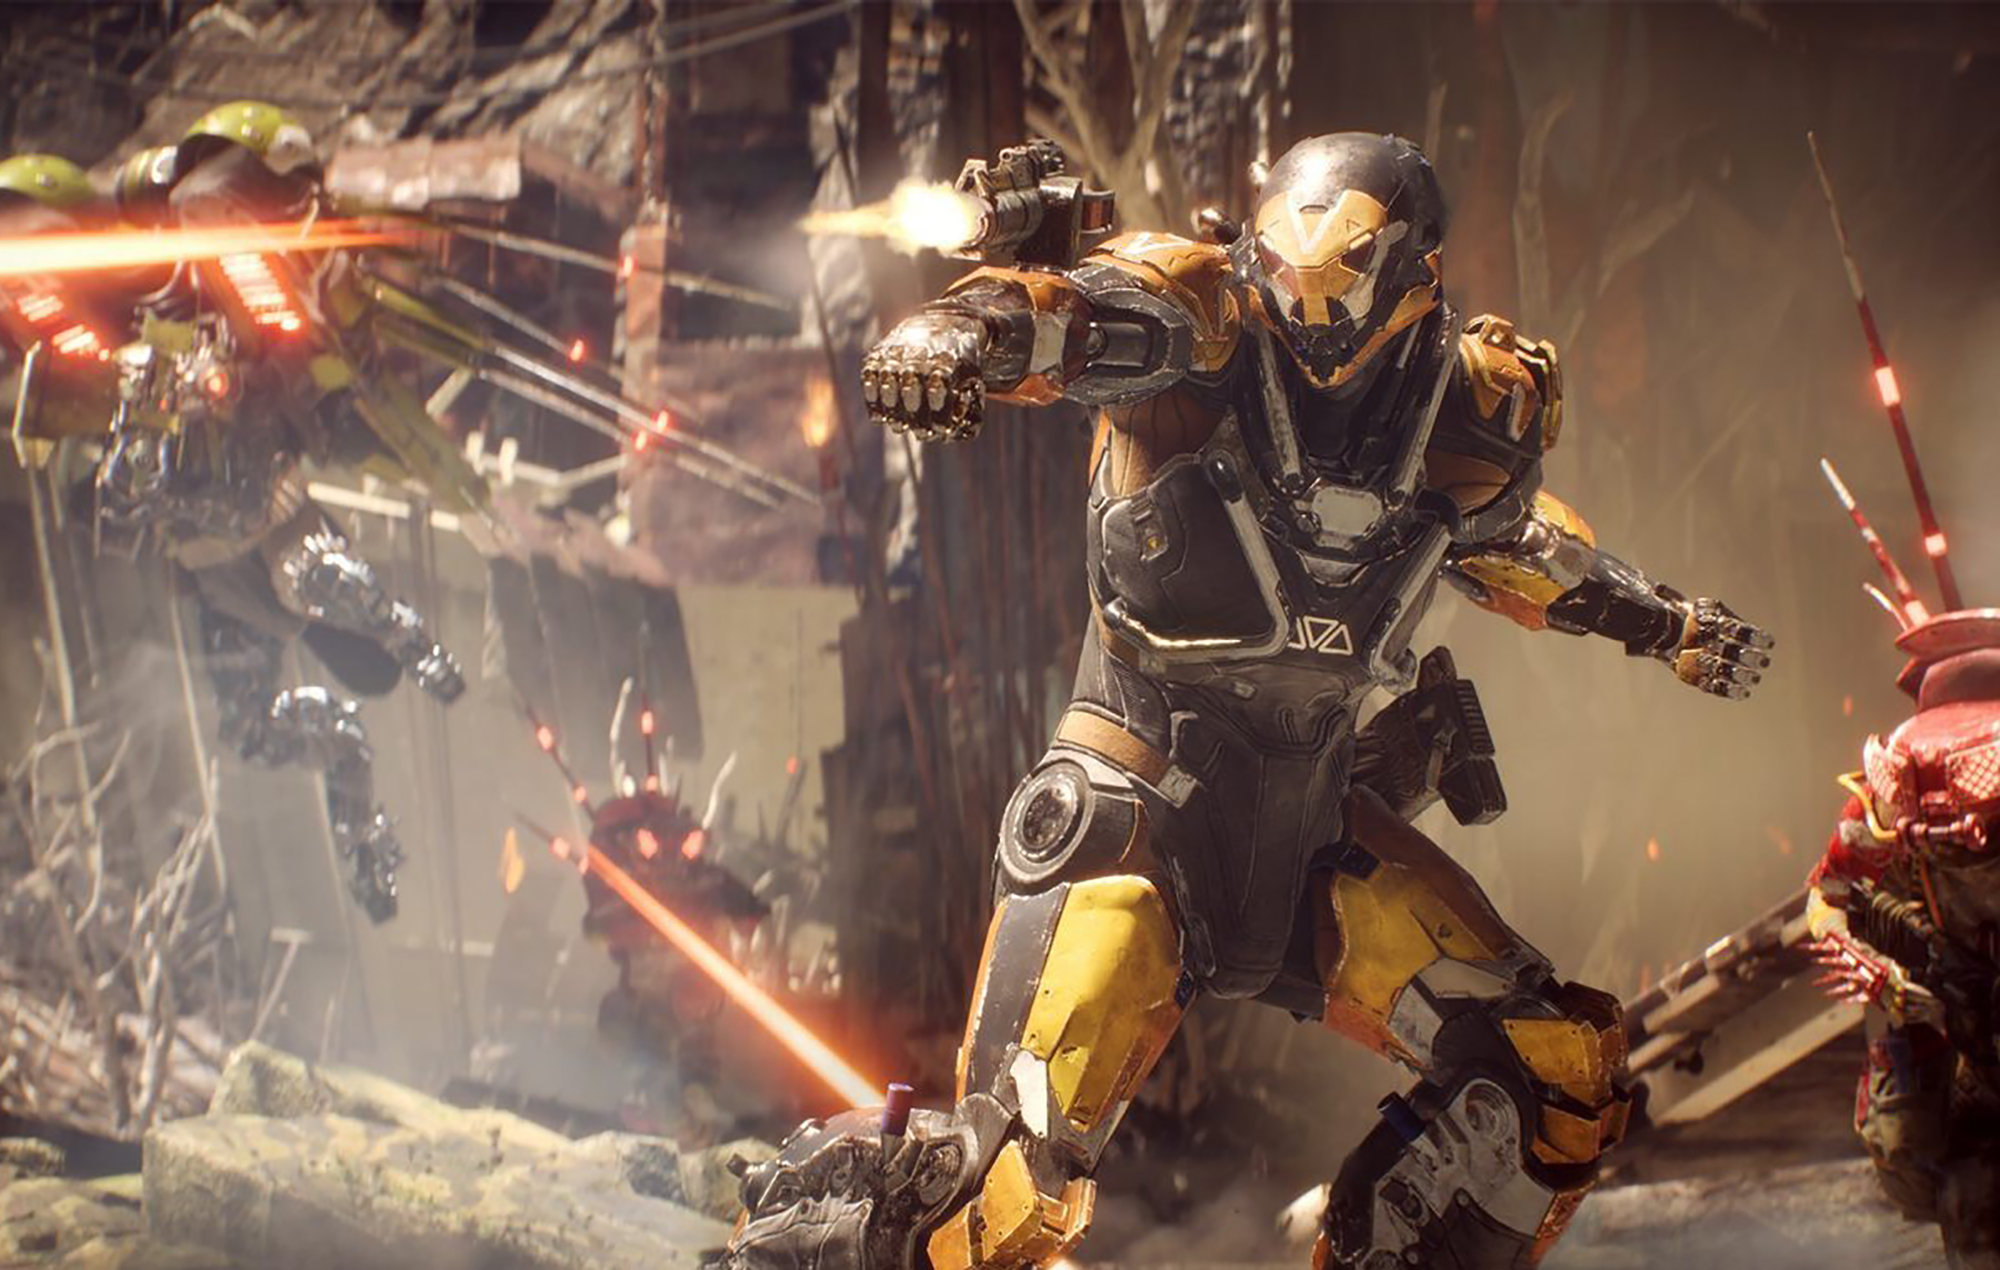 It's official: 'Anthem' is shutting down. So what went wrong?